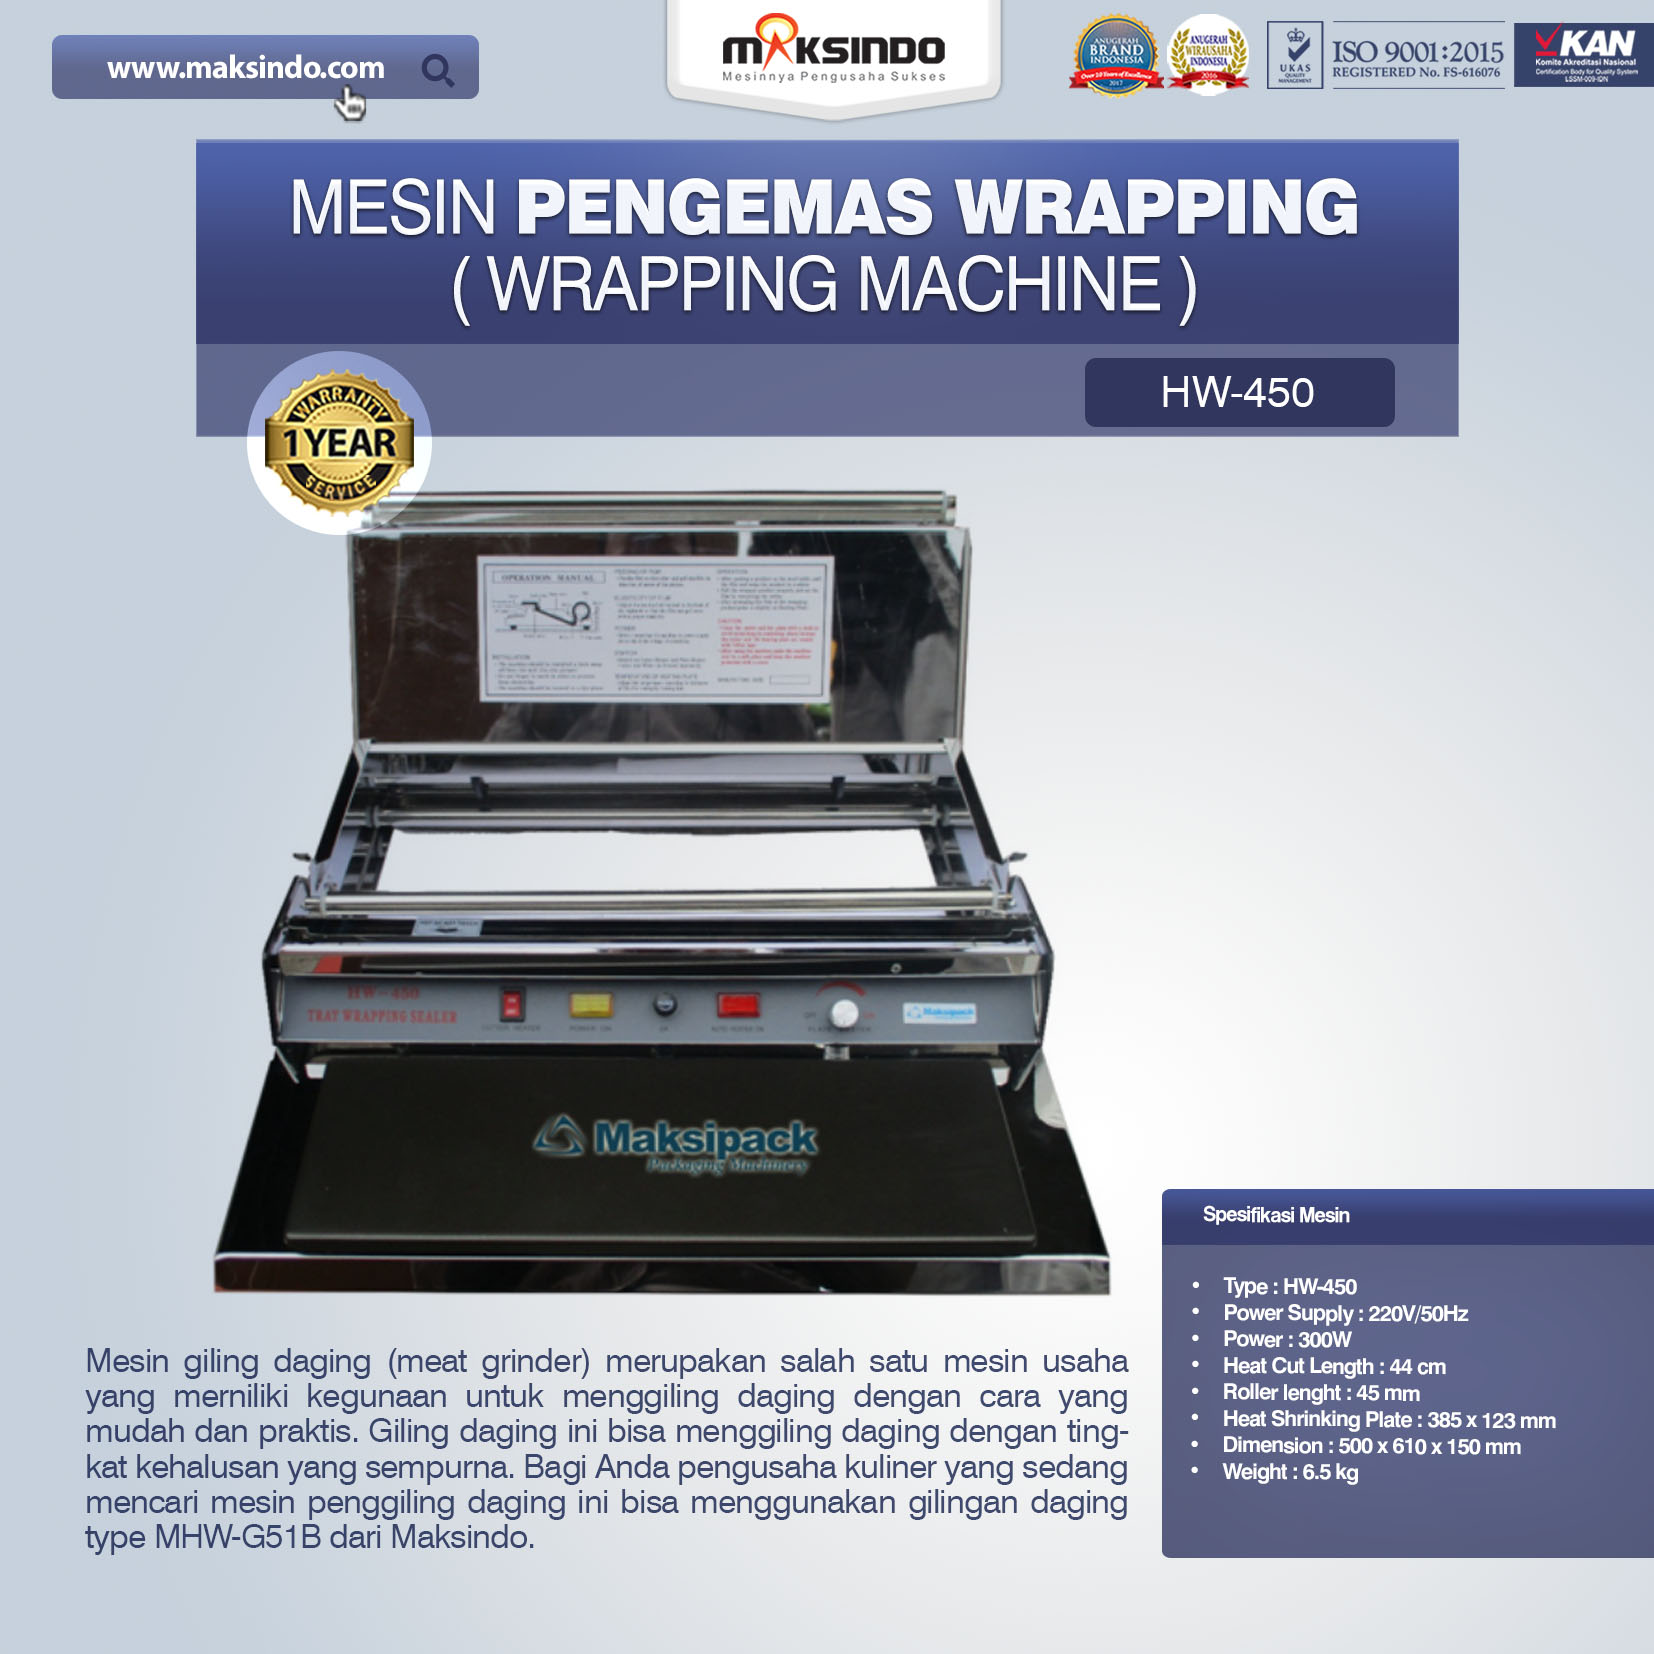 Mesin Pengemas Wrapping (Wrapping Machine) HW-450